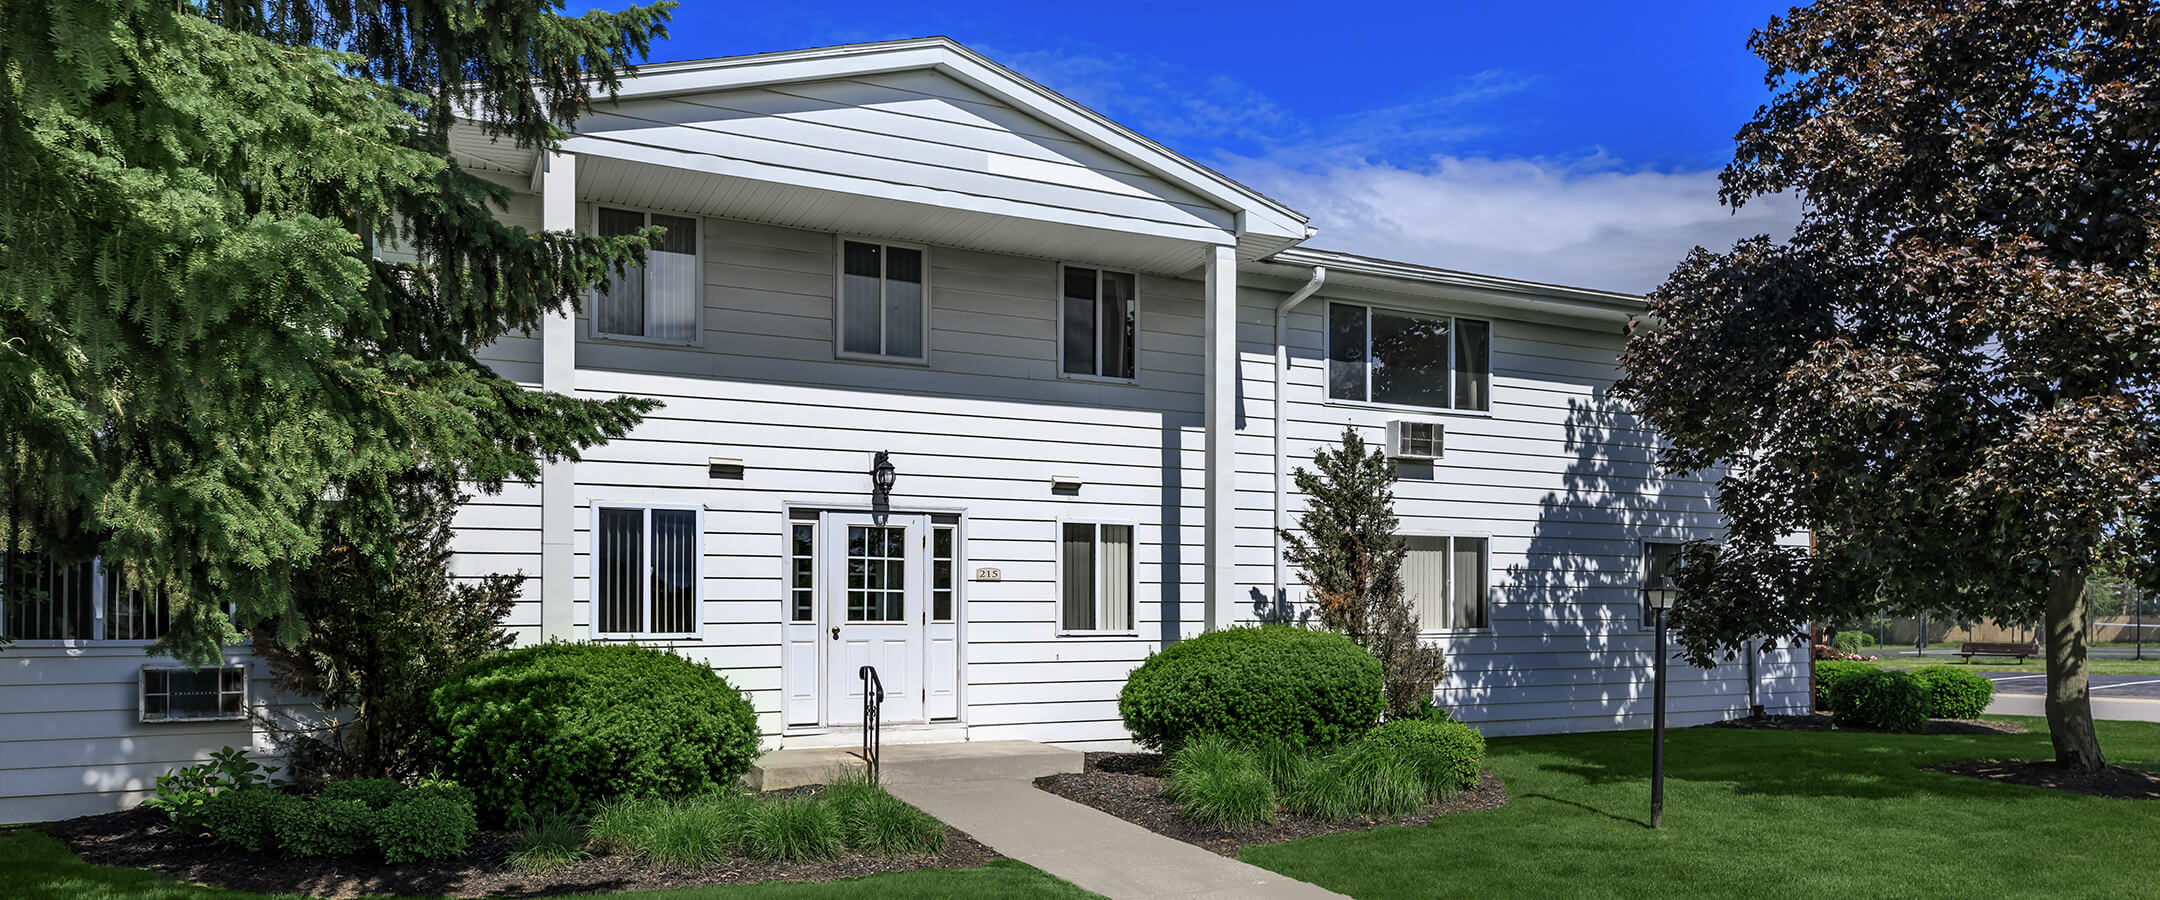 image greystone apartments townhomes apartment homes in rochester ny